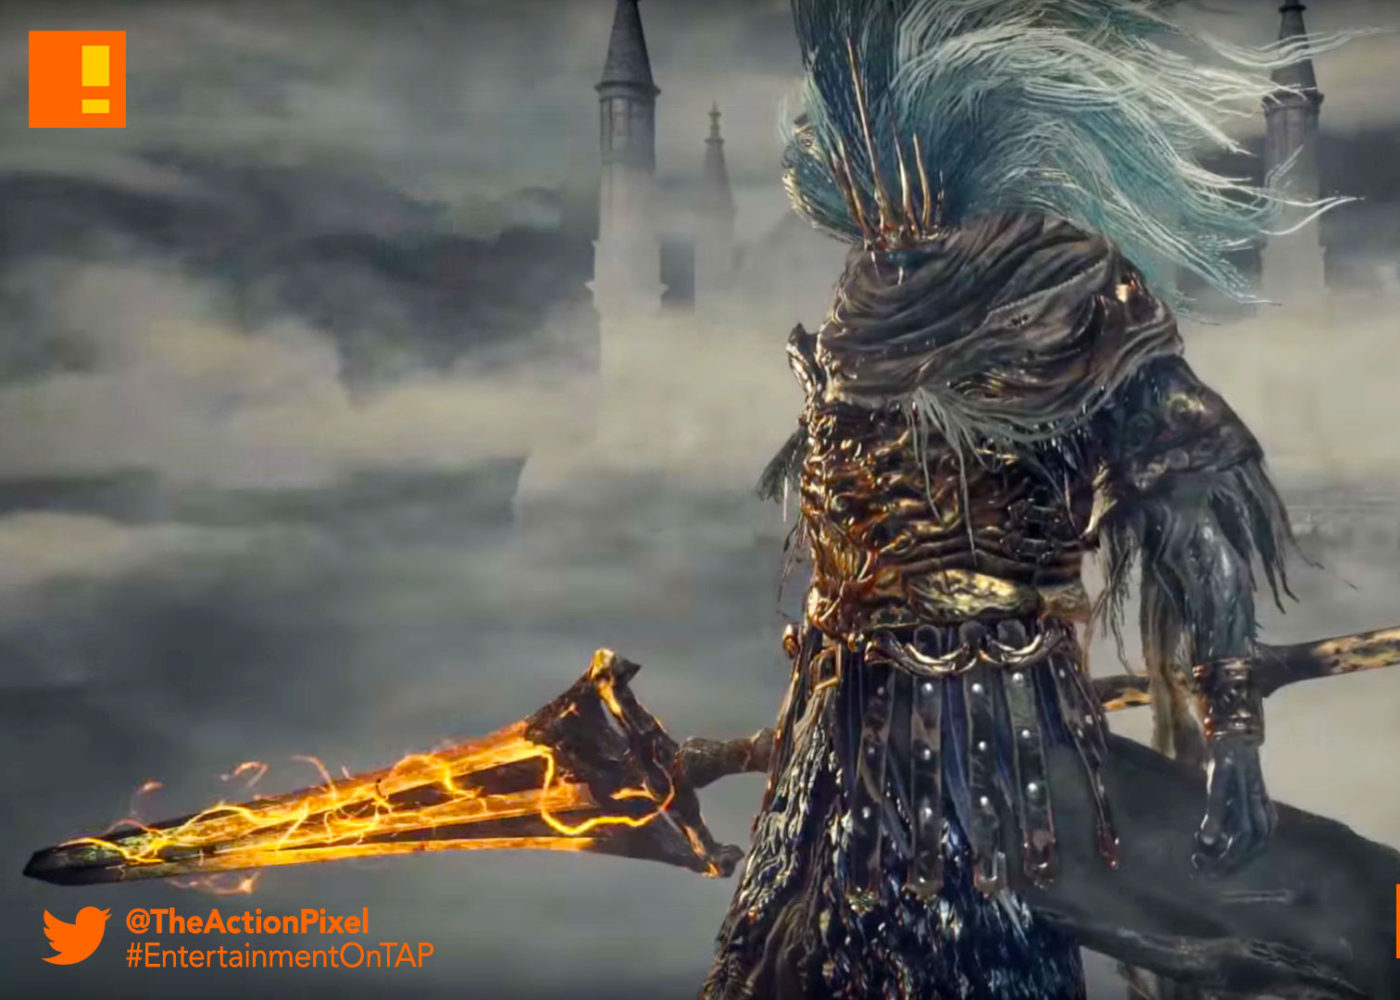 dark souls 3, our curse, the action pixel, entertainment on tap,